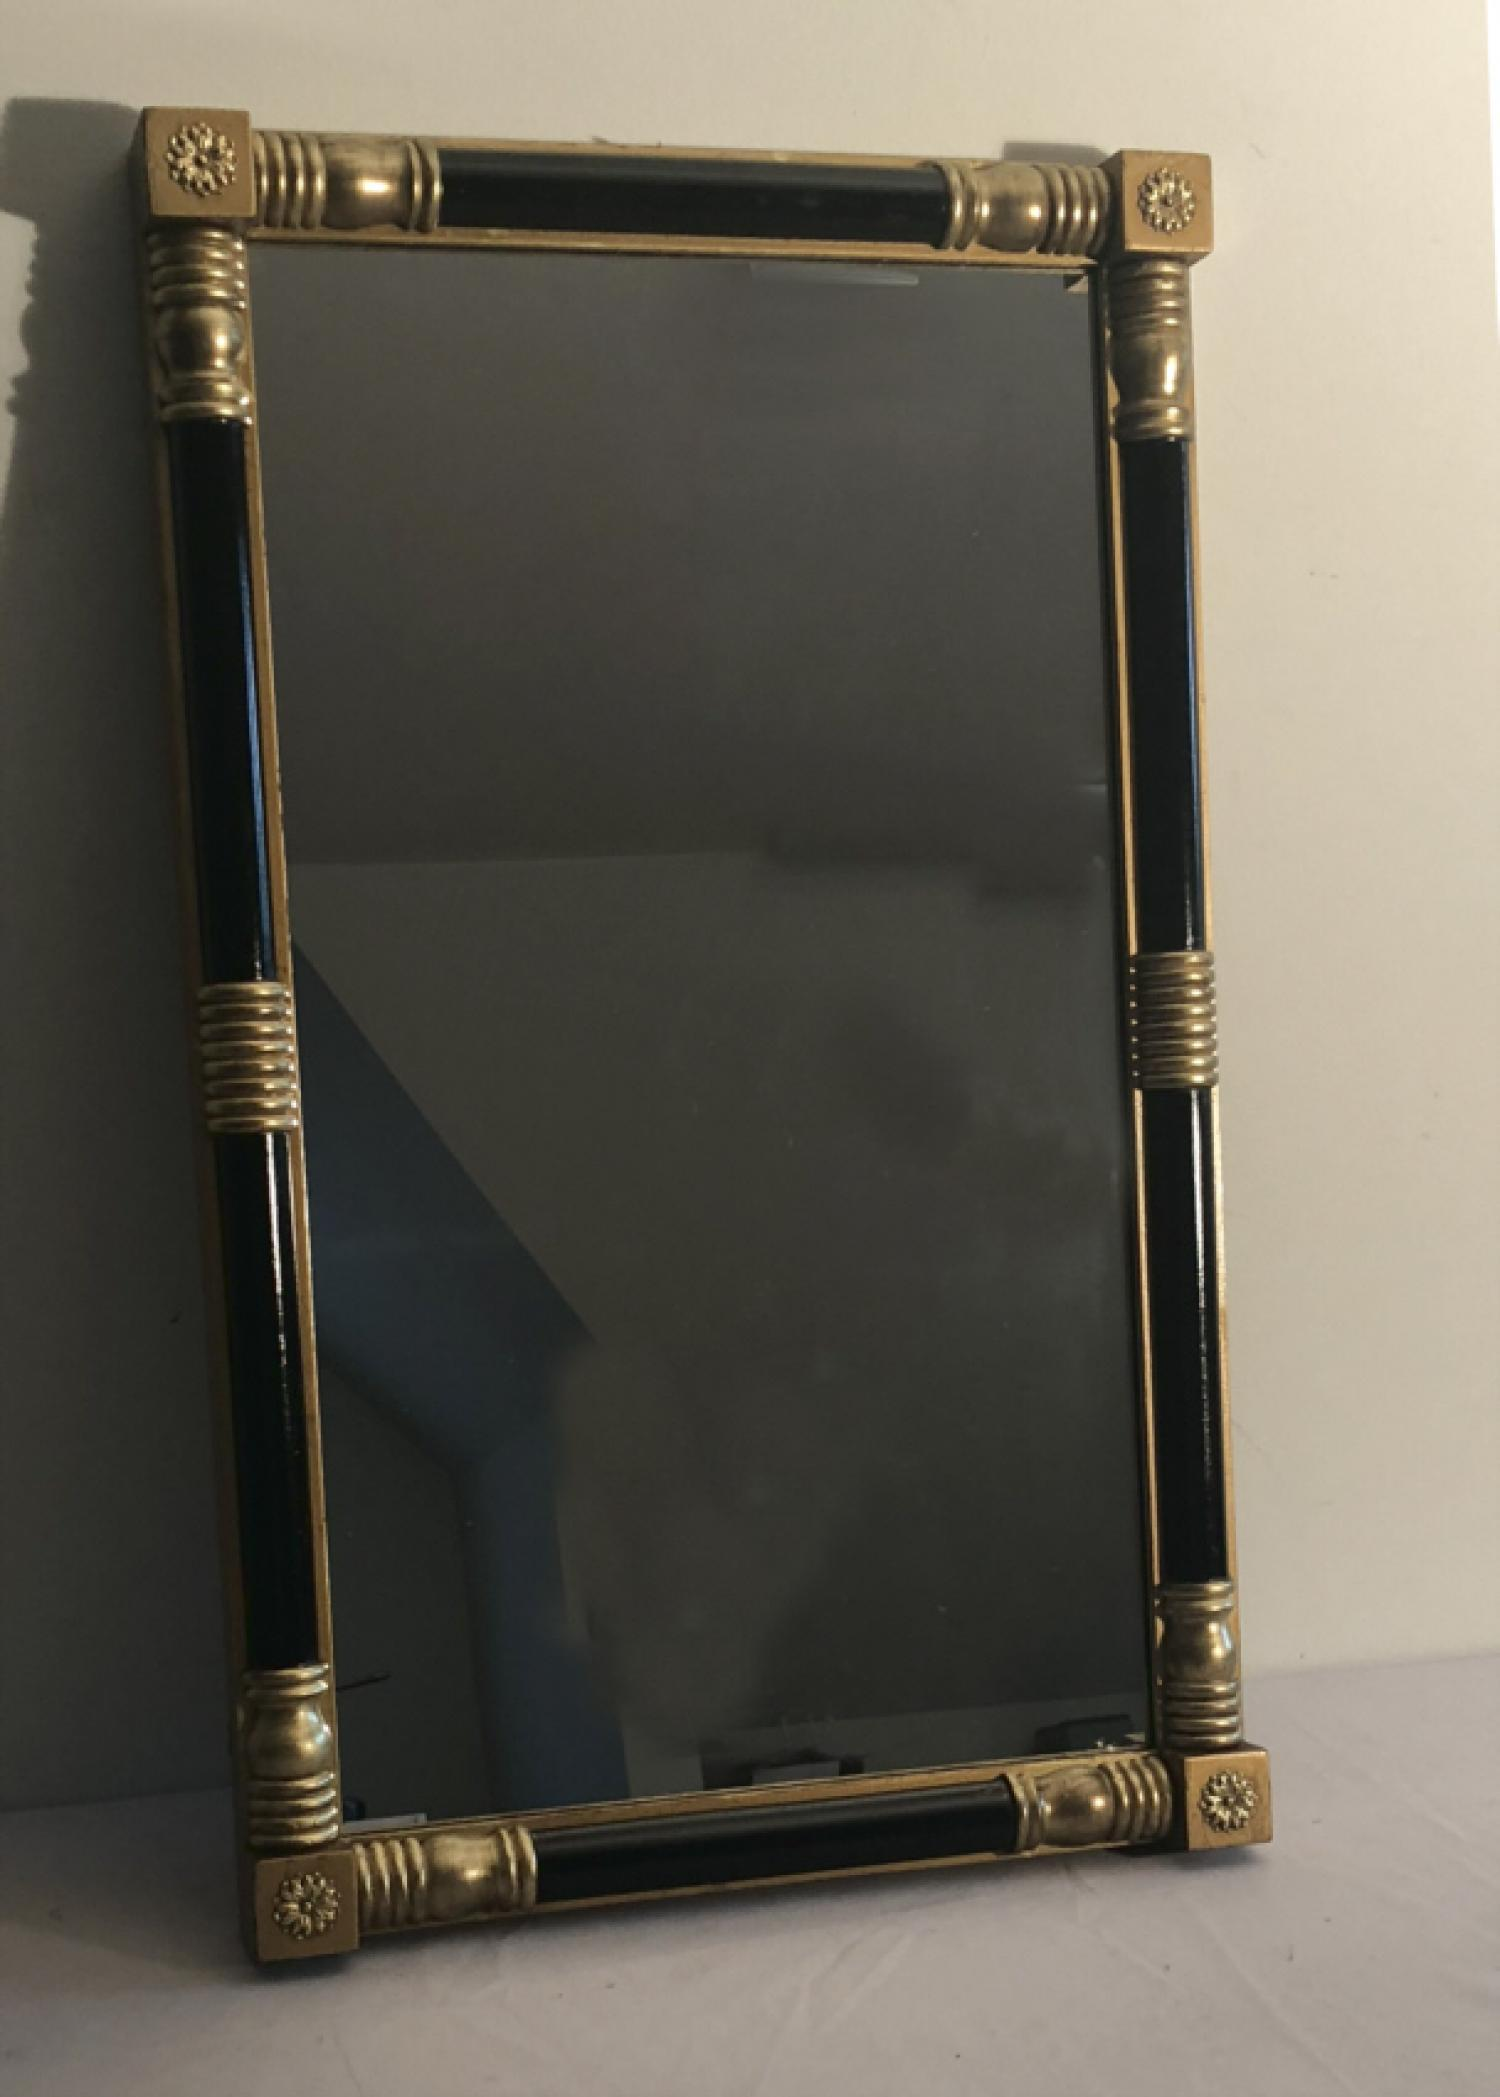 Vintage American Federal style wall mirror in black and gold c1900